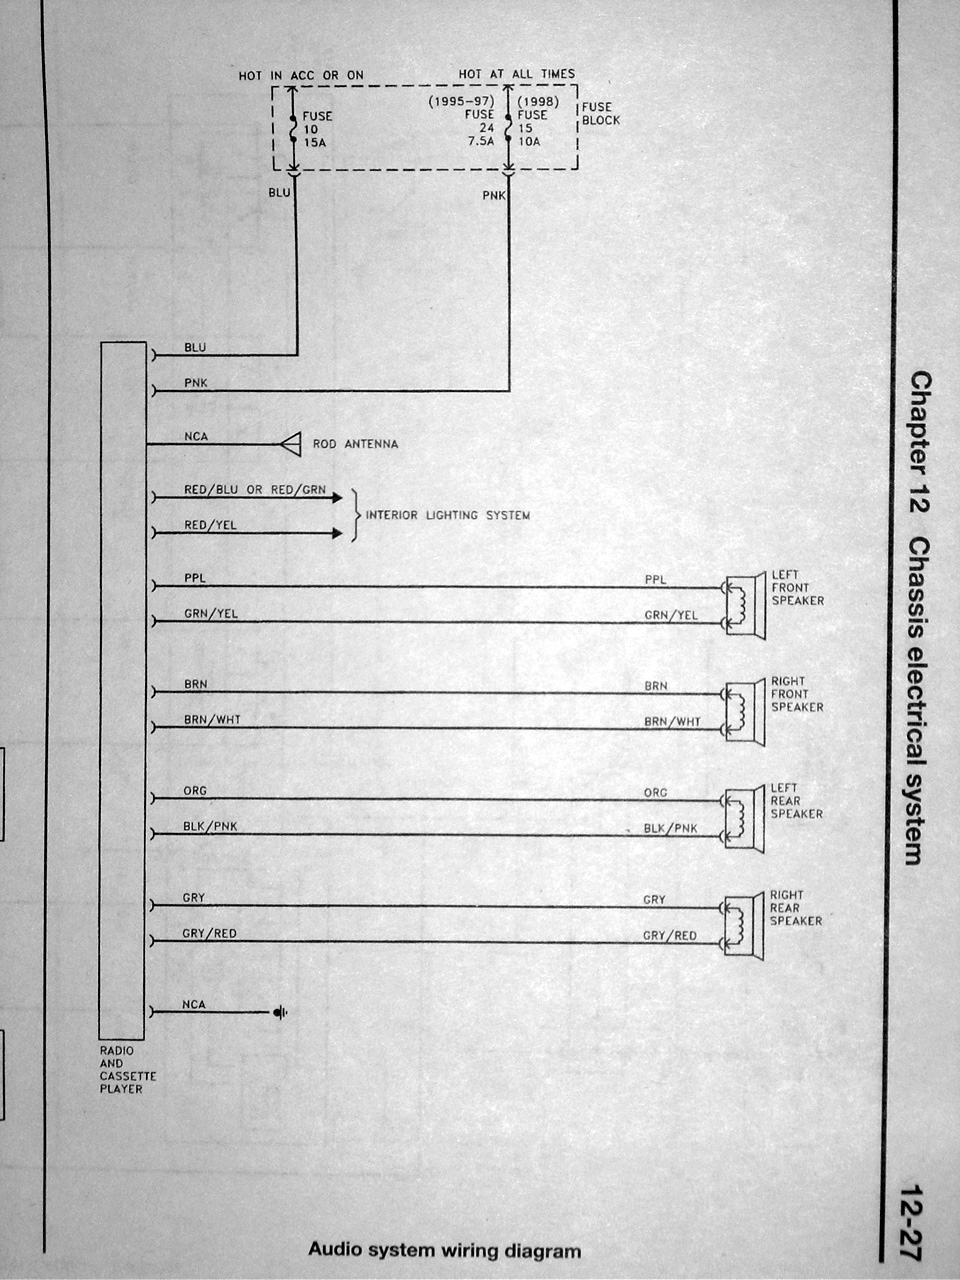 DSC01849 wiring diagram thread *useful info* nissan forum Bose Car Amplifier Wiring Diagram at bakdesigns.co